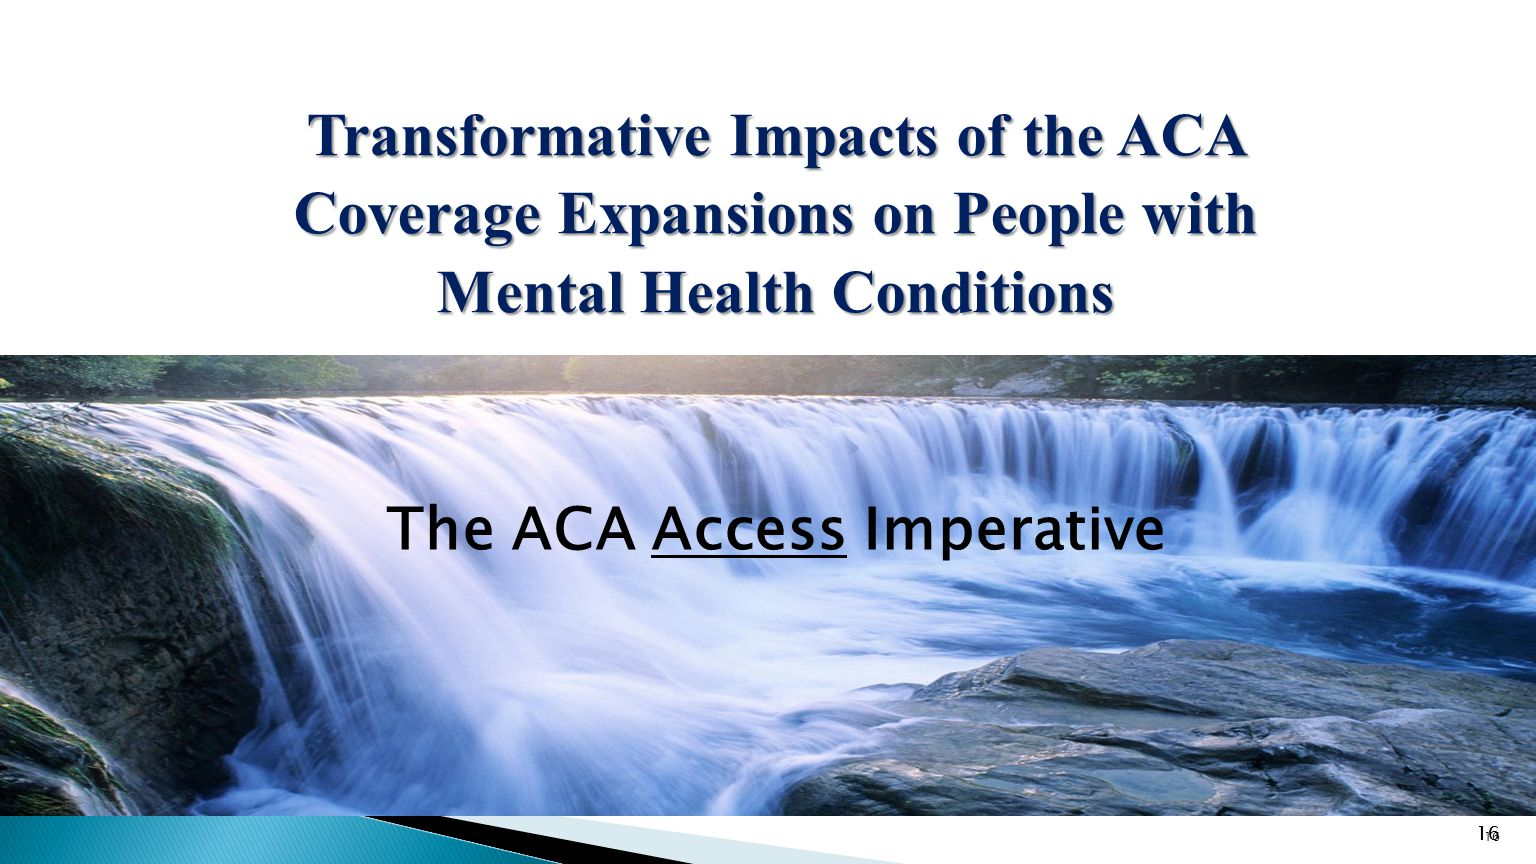 16 Transformative Impacts of the ACA Coverage Expansions on People with Mental Health Conditions 16 The ACA Access Imperative